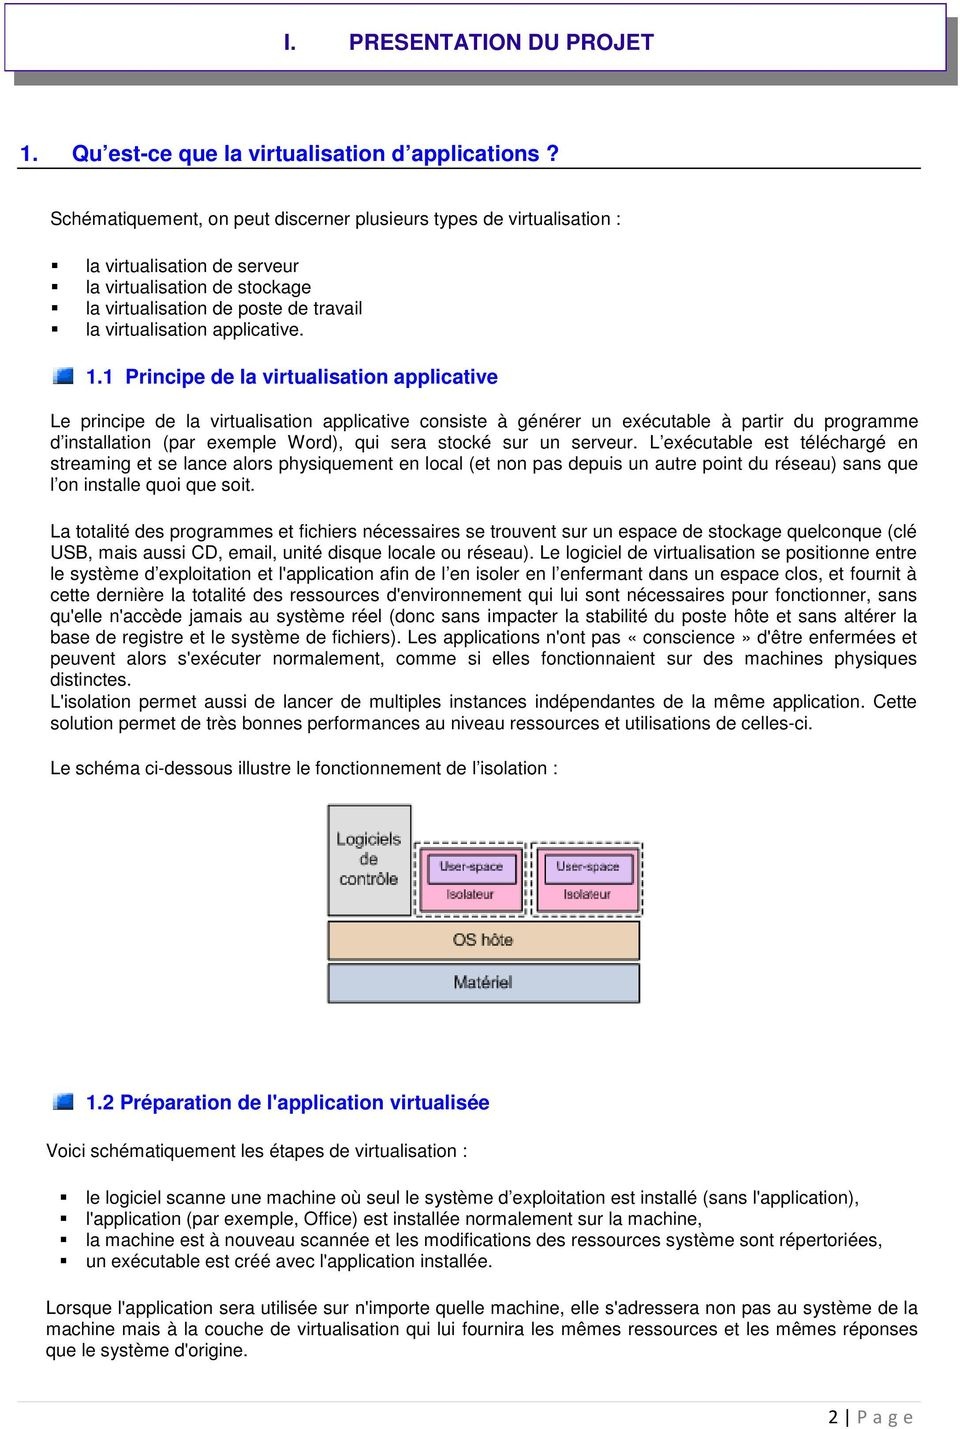 1.1 Principe de la virtualisation applicative Le principe de la virtualisation applicative consiste à générer un exécutable à partir du programme d installation (par exemple Word), qui sera stocké